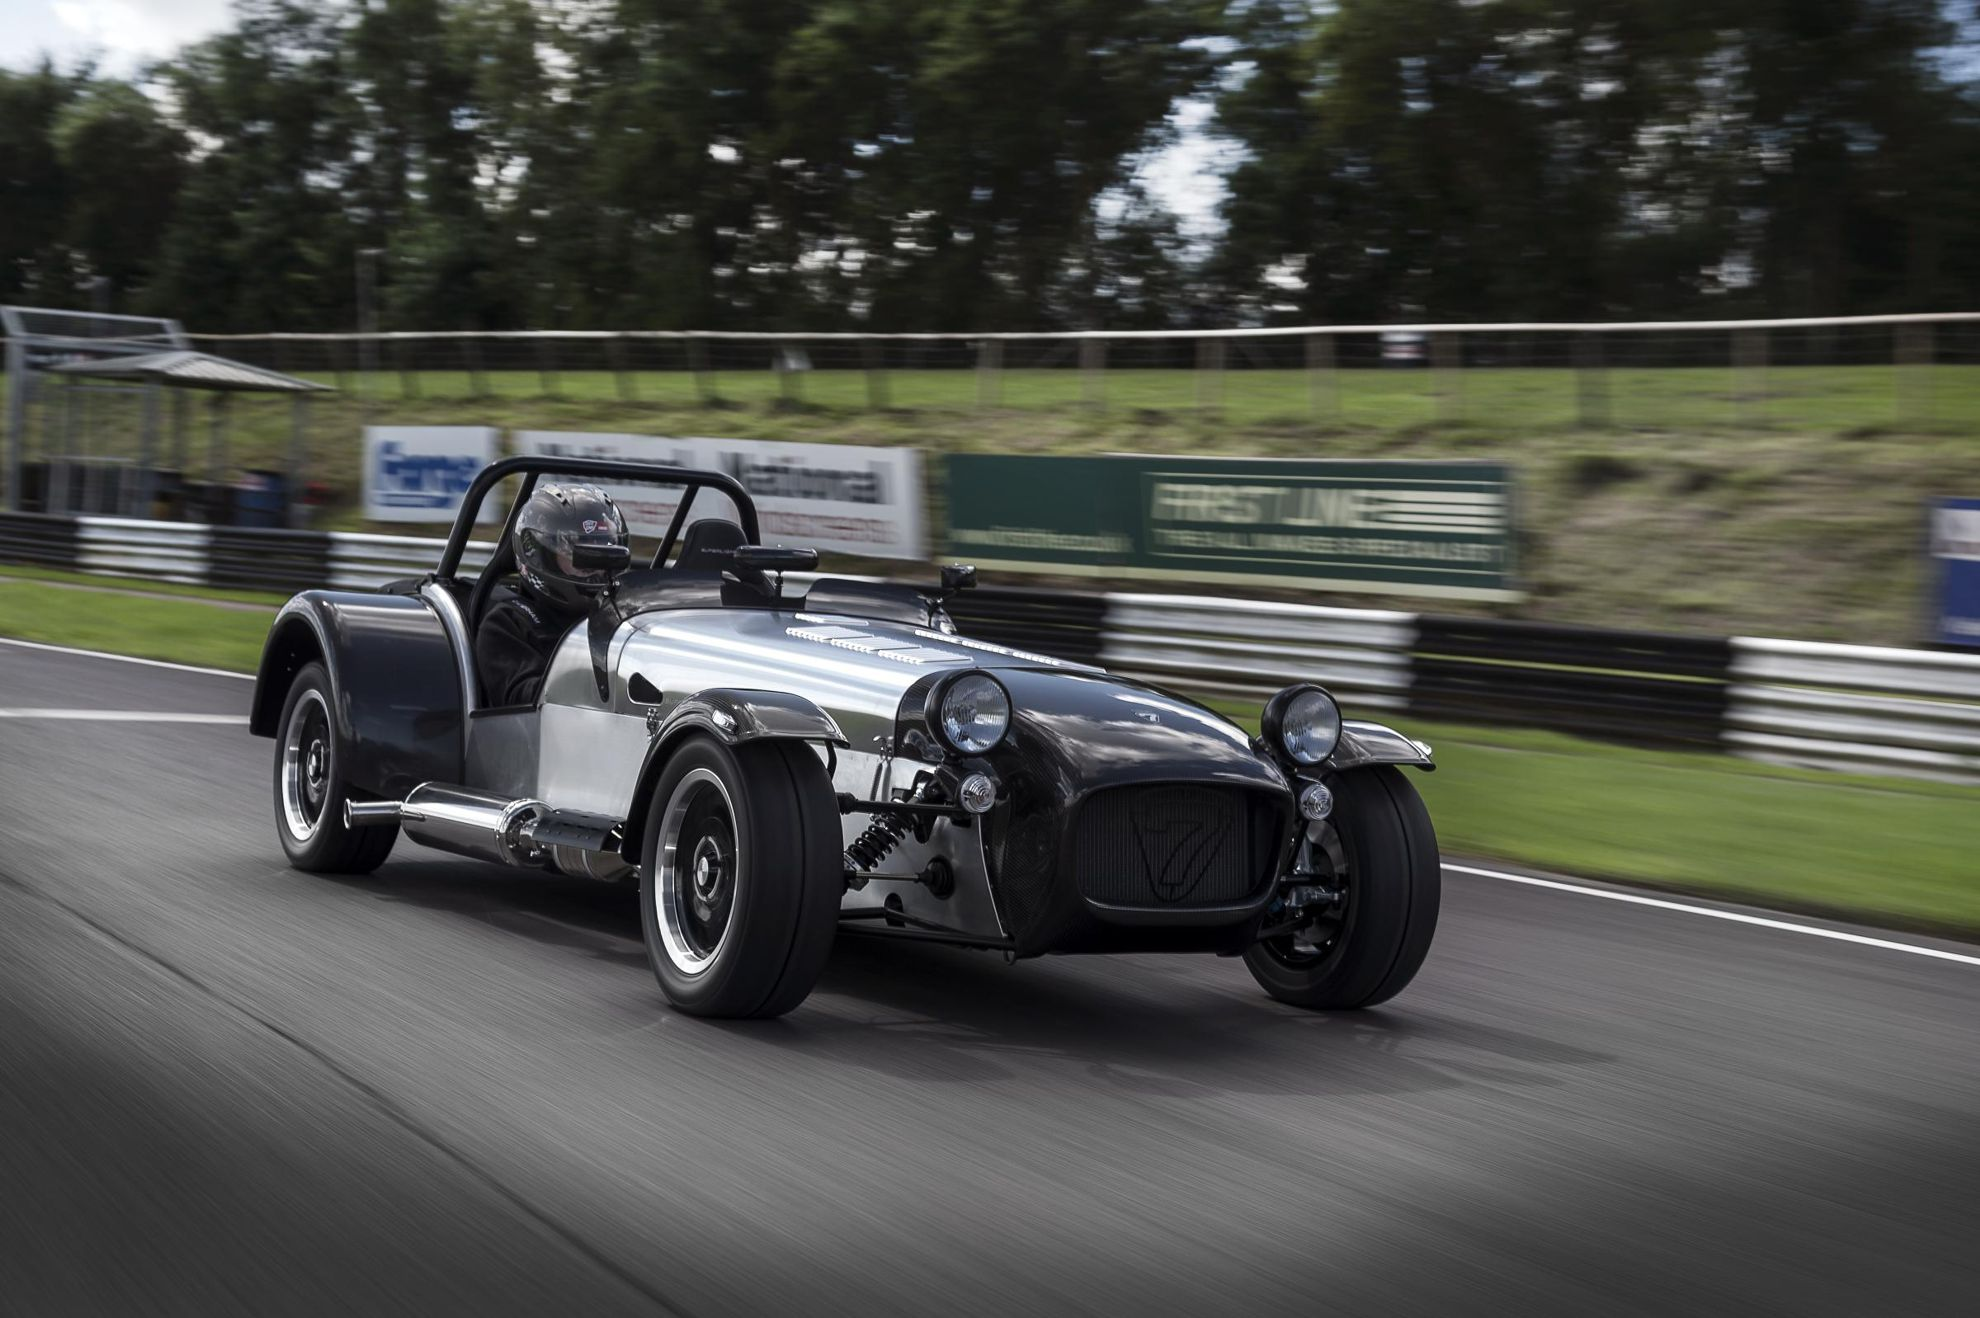 Caterham-Superlight